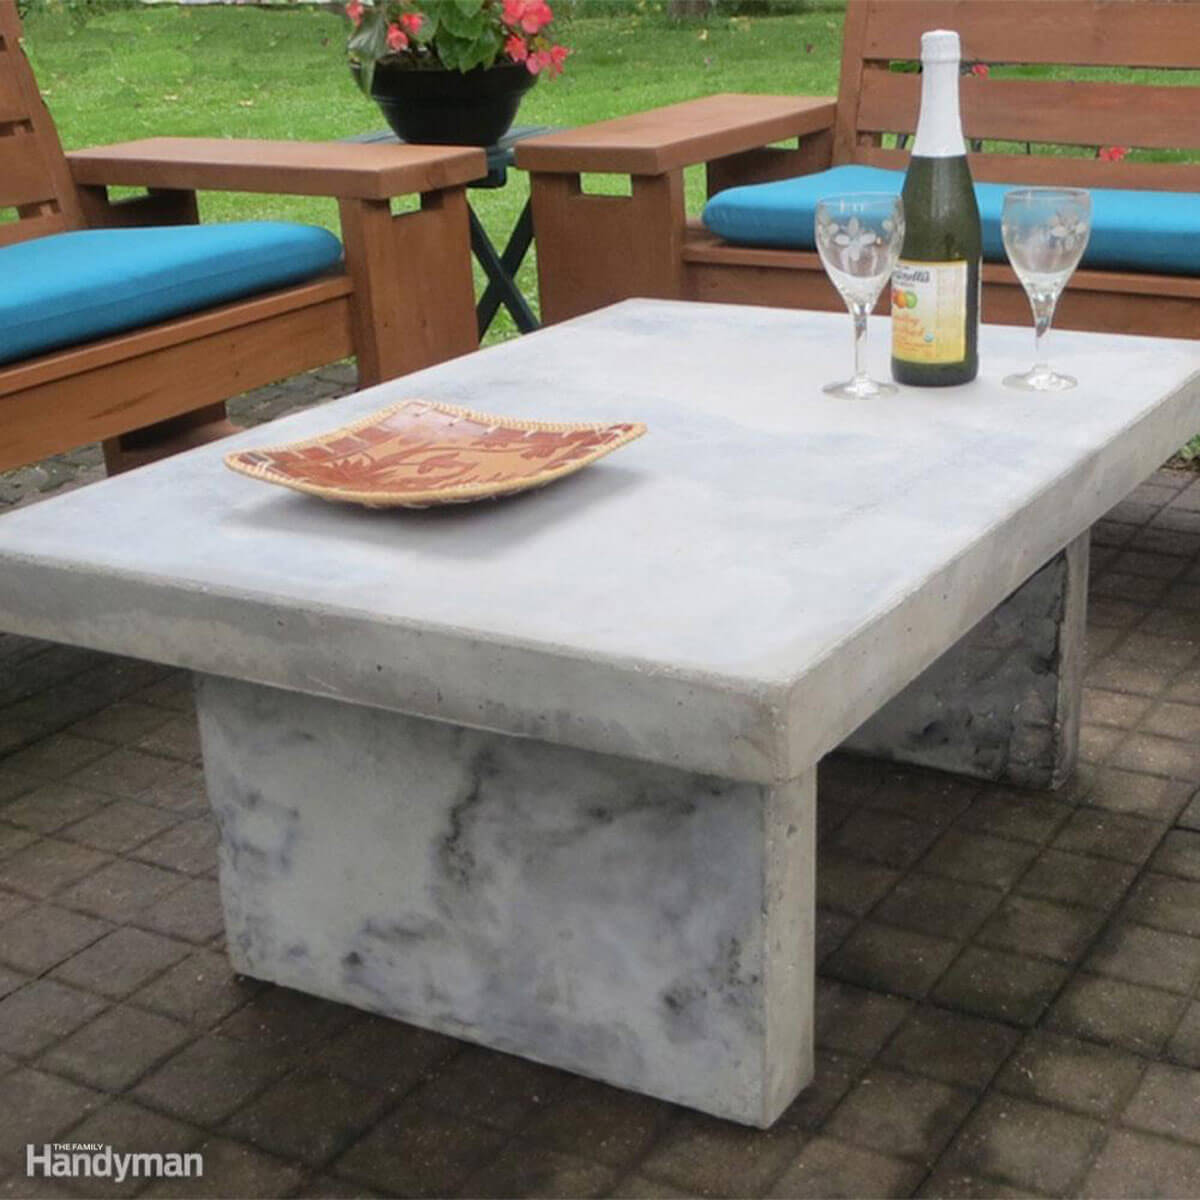 awesome plans for diy patio furniture the family handyman quikretelede faux marble table outdoor side bbq legs tables live edge end wood sofa coffee small wooden bedside lamp